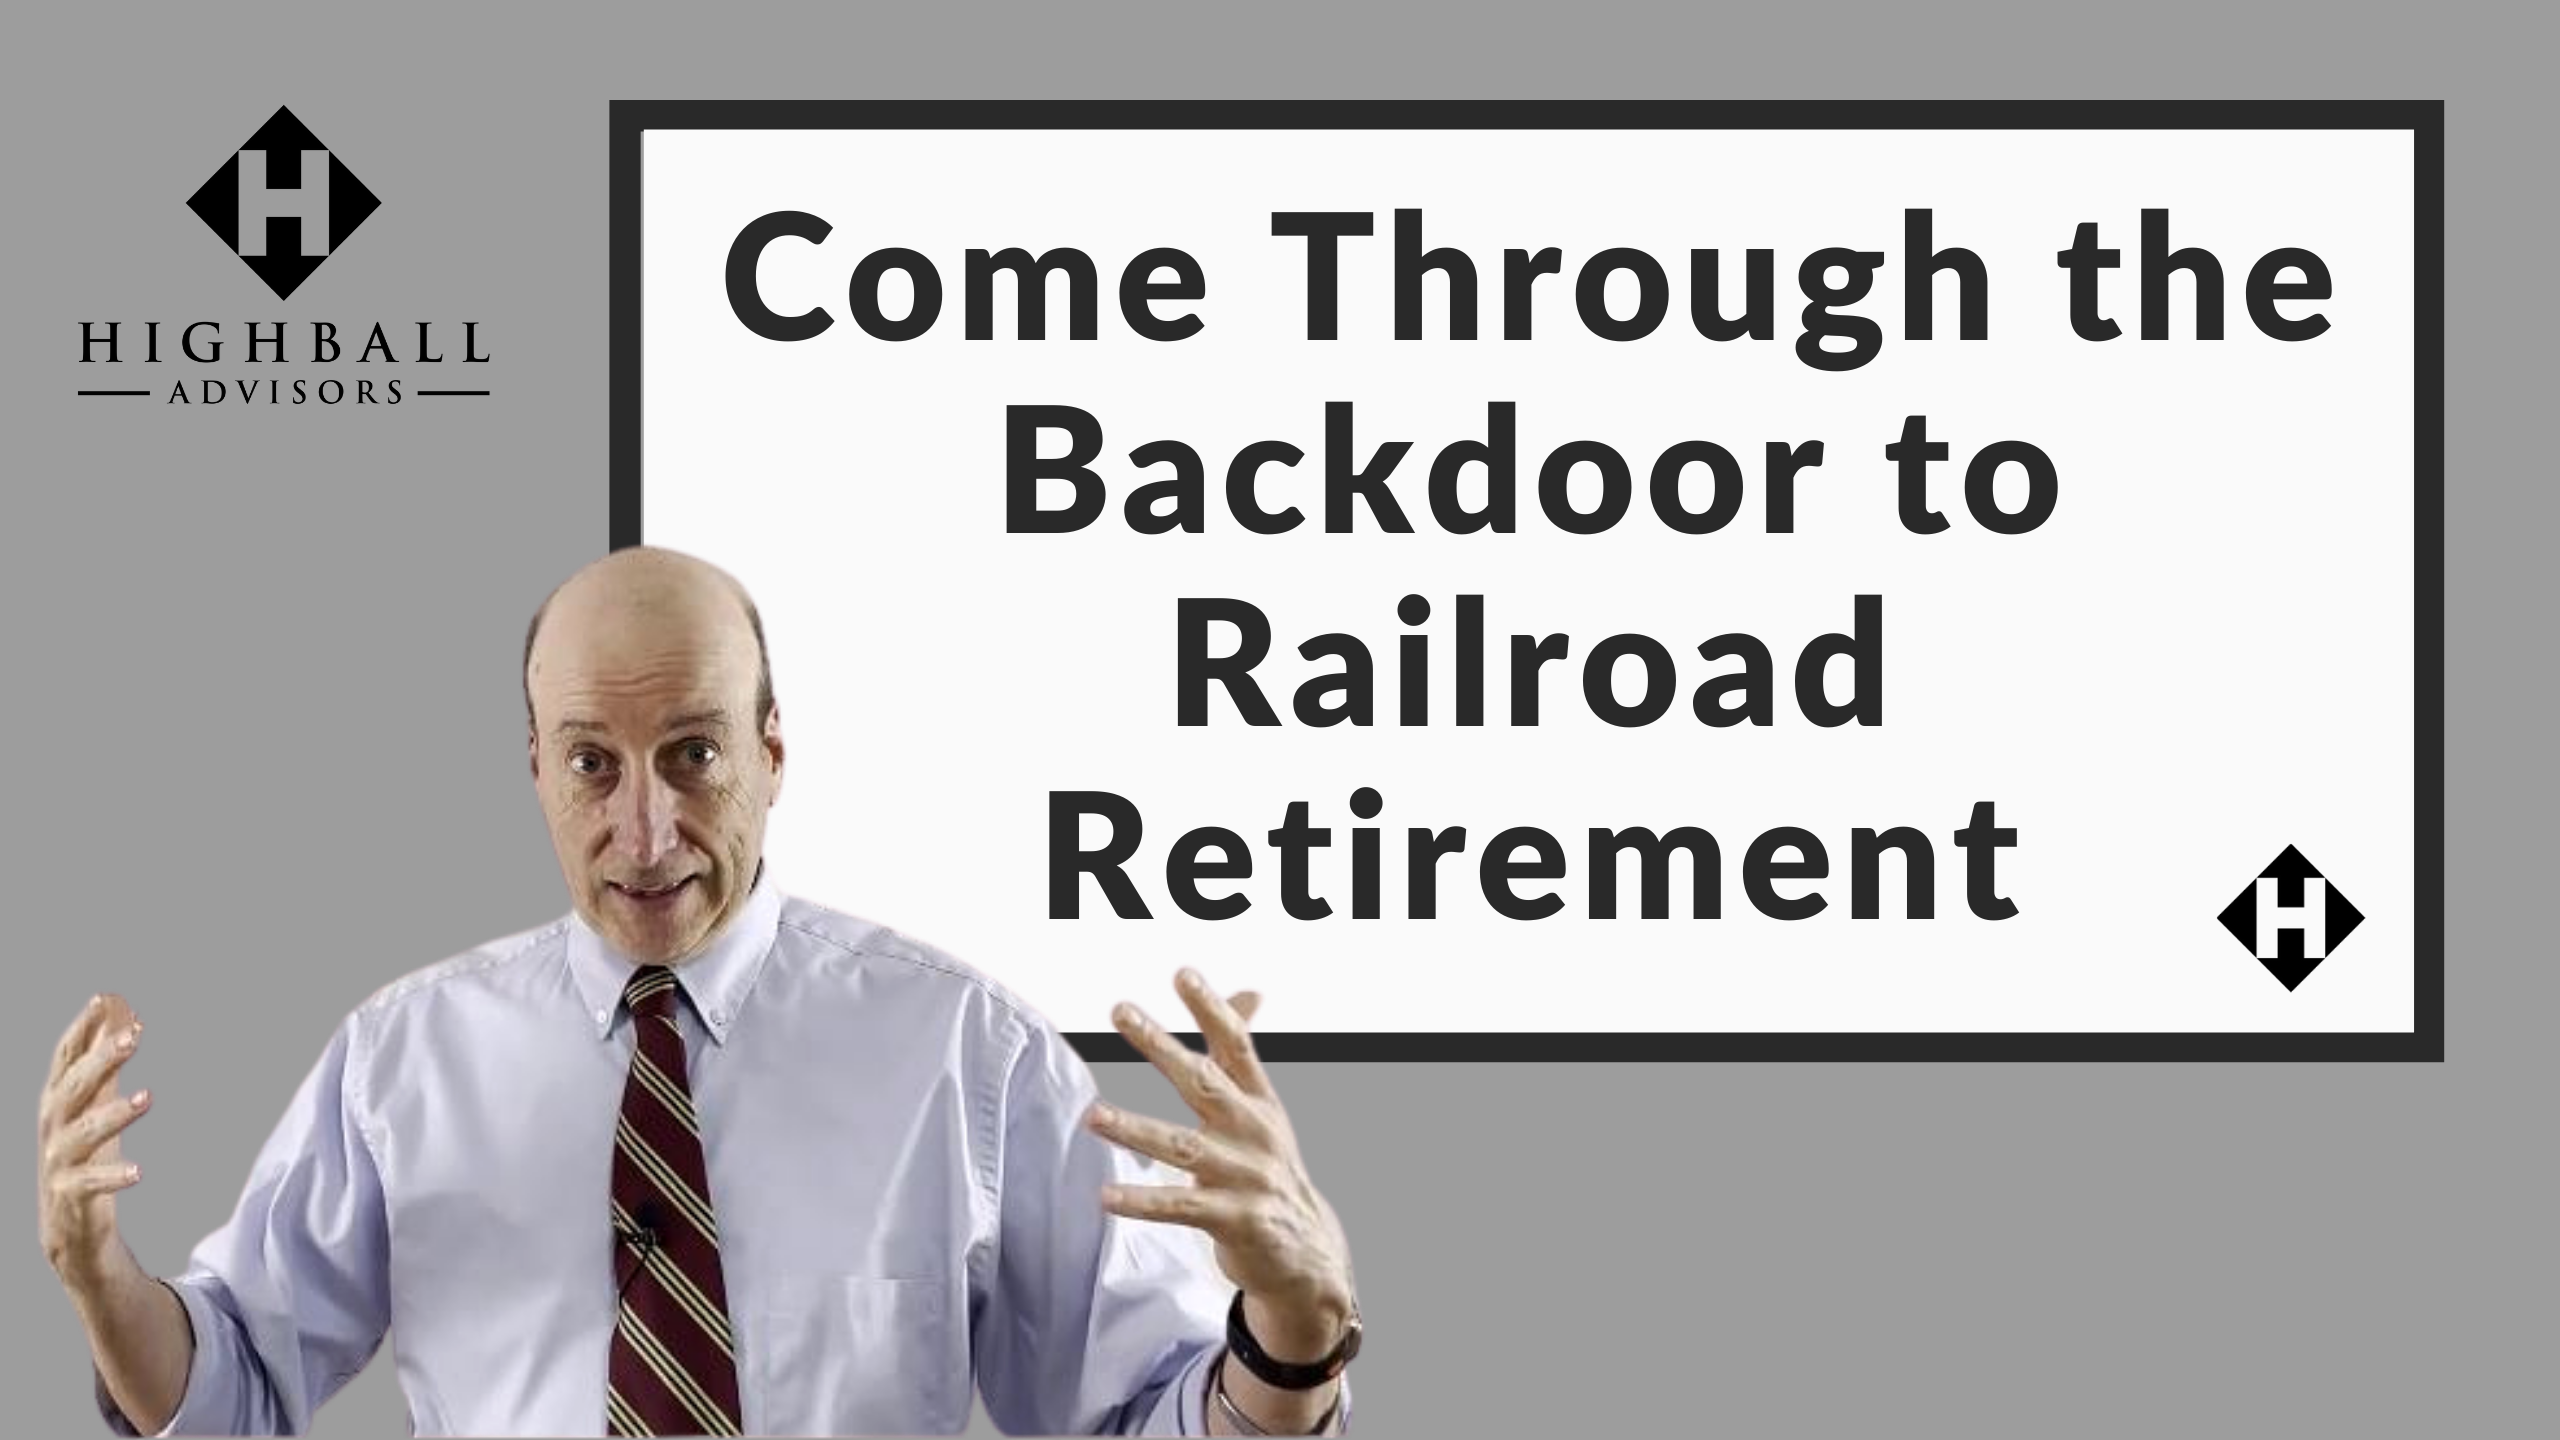 Come Through the Backdoor to Railroad Retirement Thumbnail